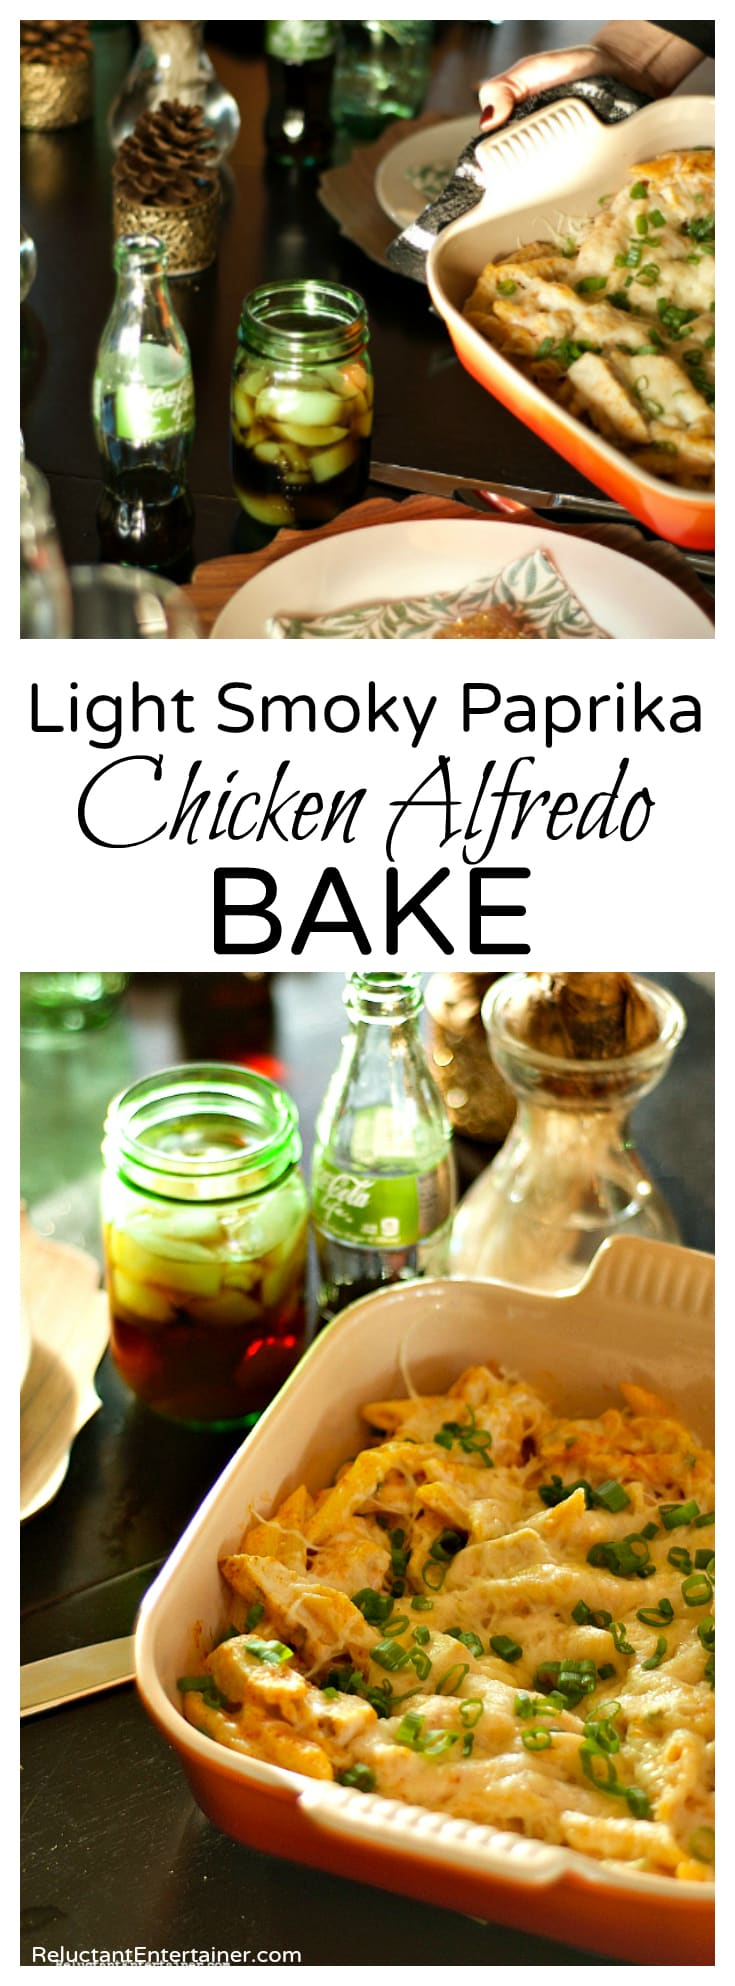 Light Smoky Paprika Chicken Alfredo Bake